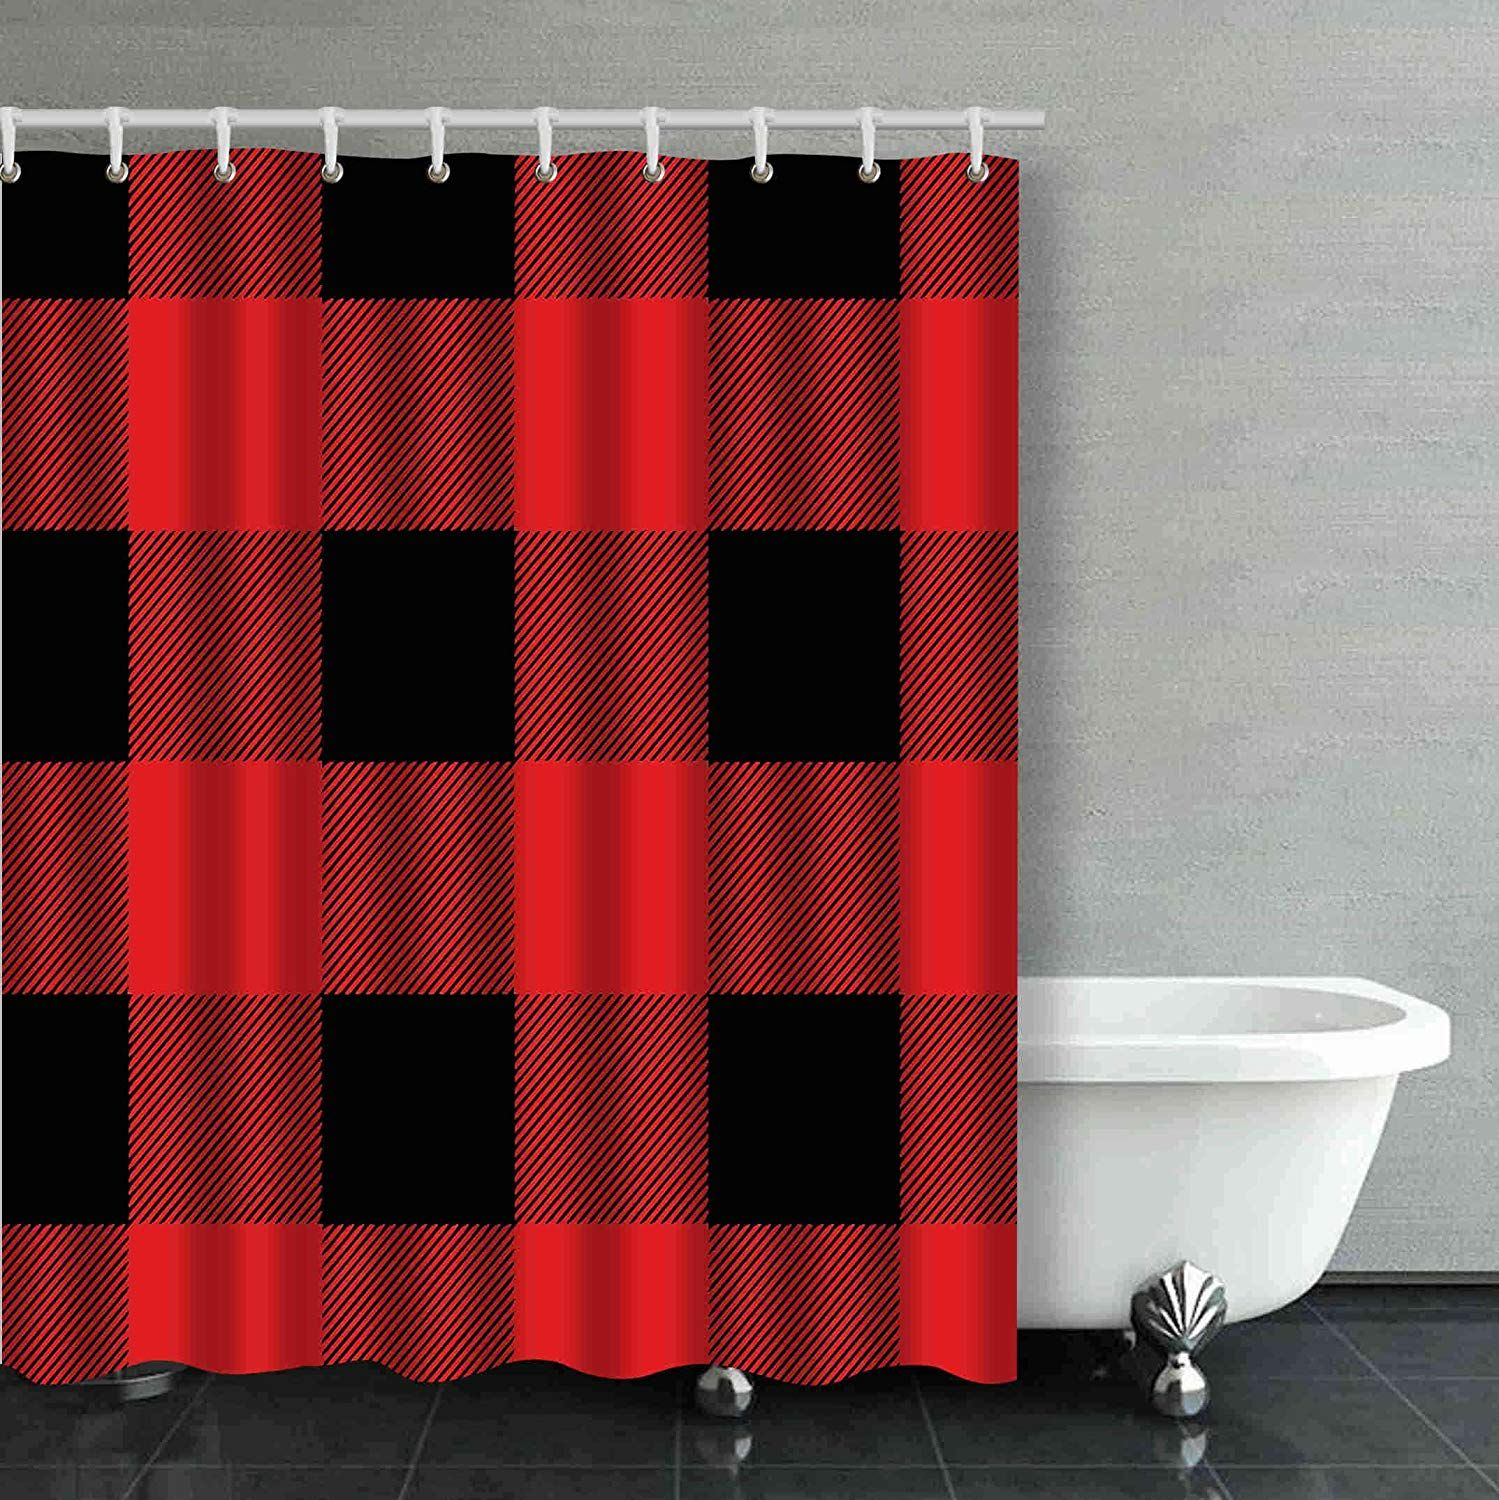 Bpbop Rustic Red And Black Buffalo Check Plaid Bathroom Shower Curtain 60x72 Inches Walmart Com In 2021 Bathroom Red Red Shower Curtains Bathroom Shower Curtains [ 1500 x 1499 Pixel ]